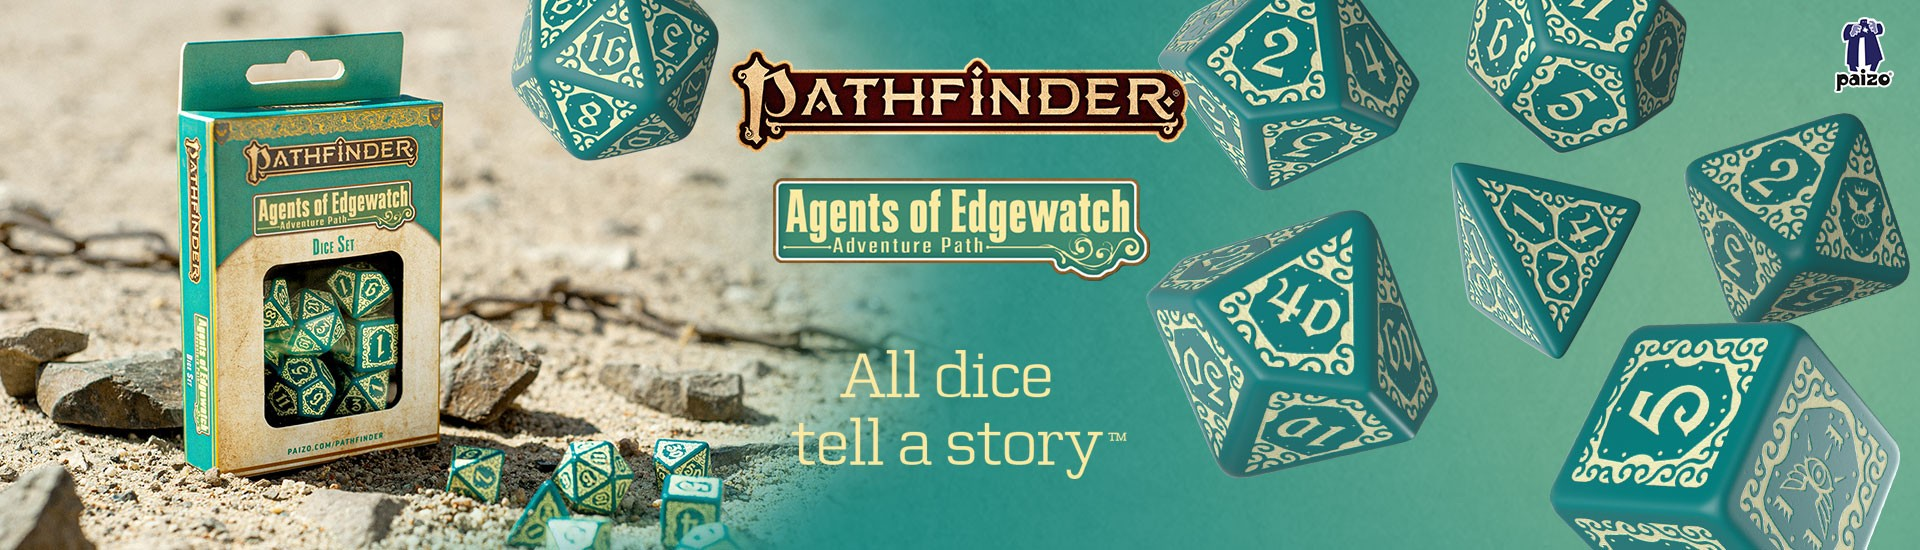 Pathfinder Agents of Edgewatch Dice Set